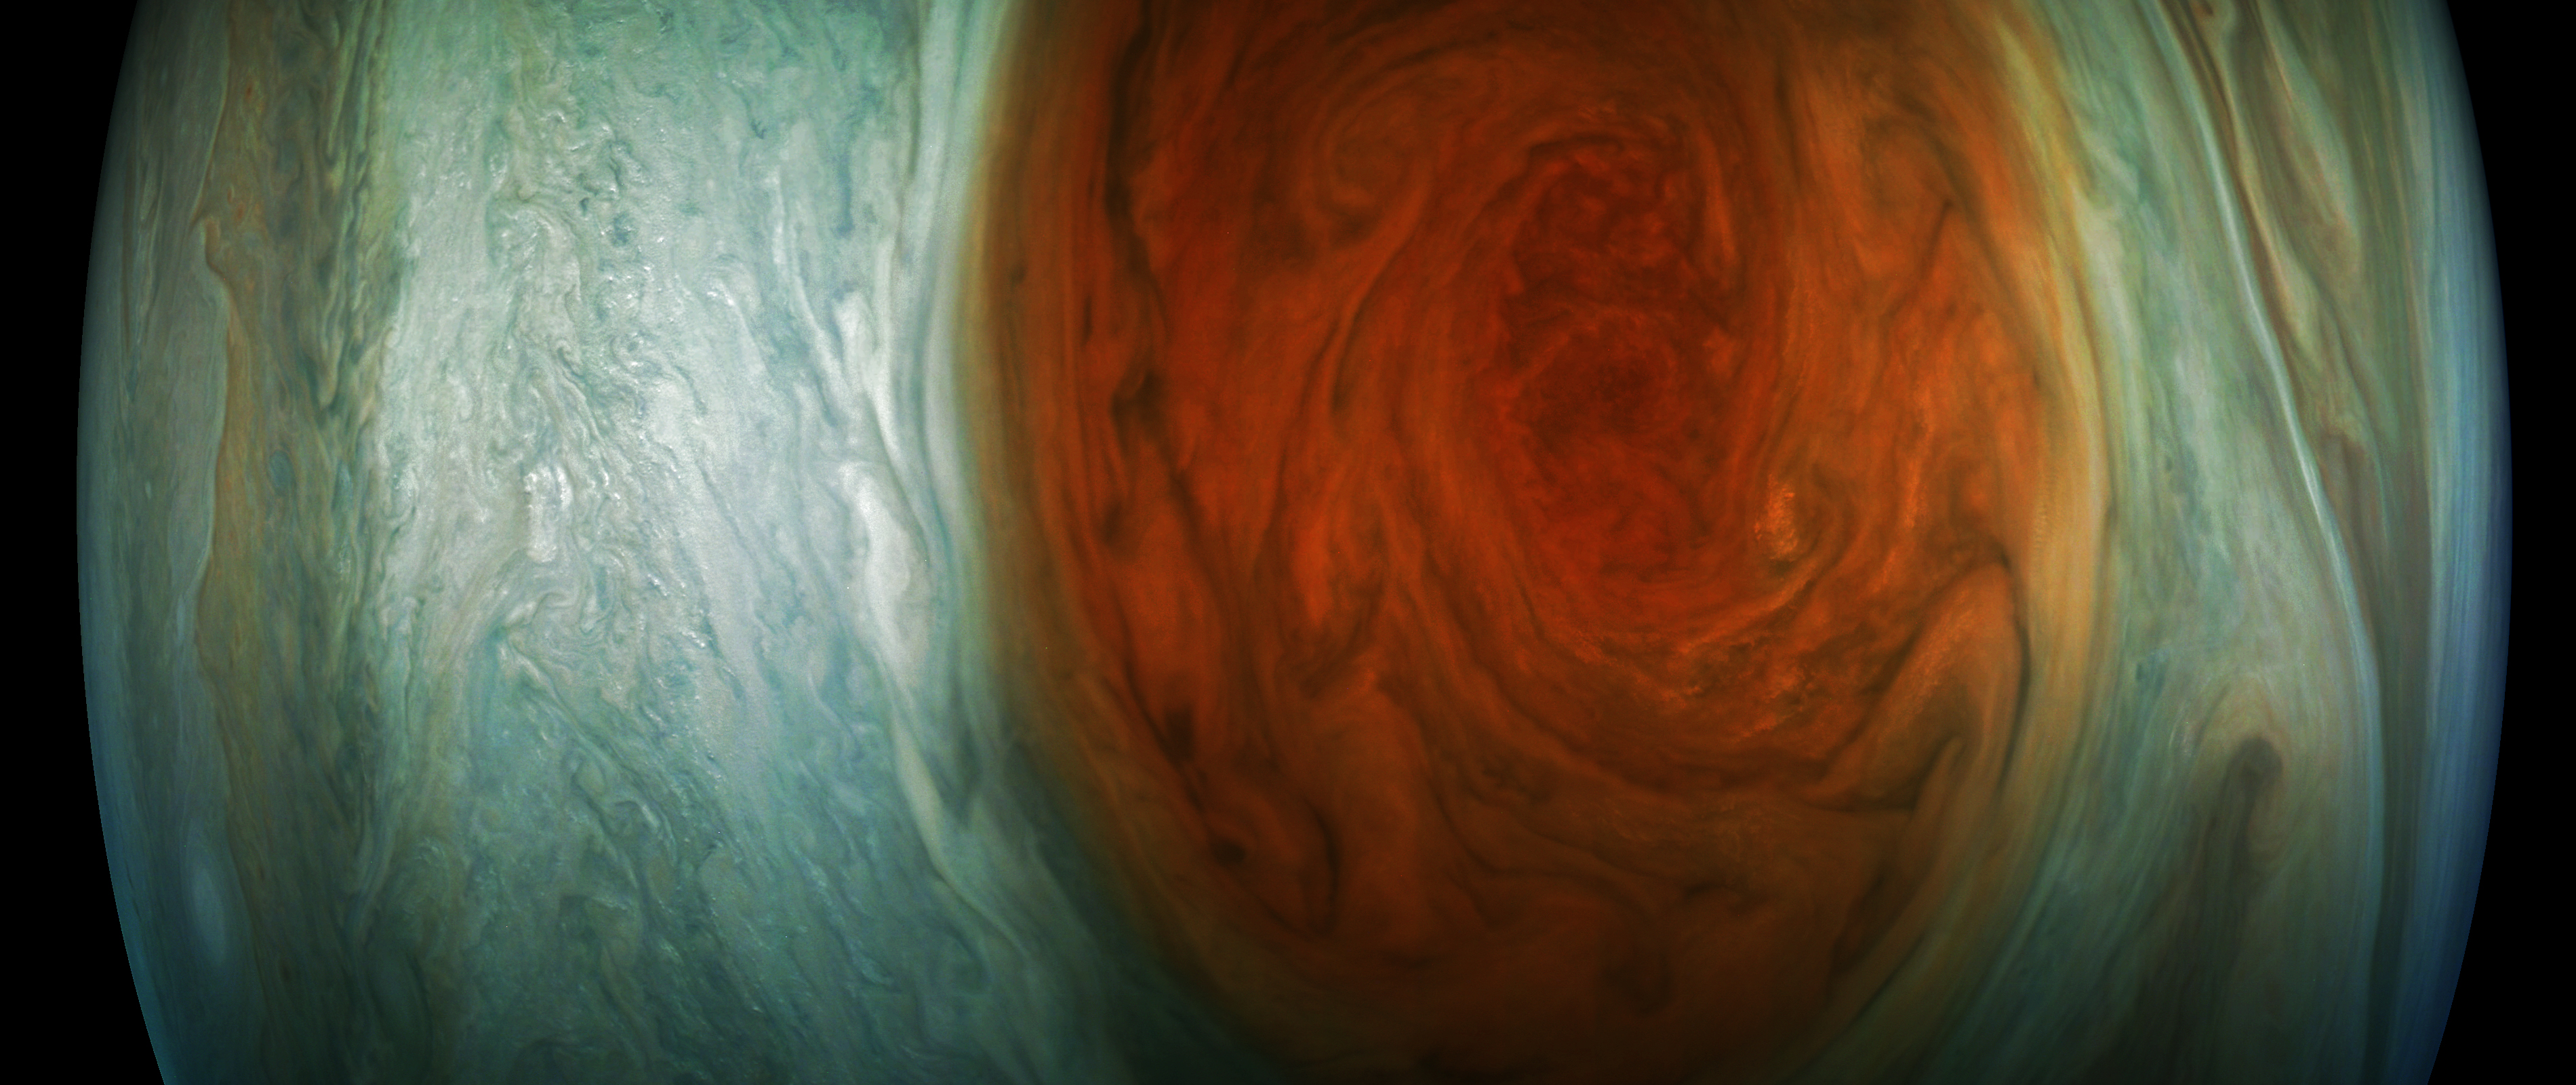 Jupiters Great Red Spot A Perfect Storm Of Art And Science Diagram The Greater Solar System Credit Nasajpl Nasa Jpl Caltech Swri Msss Gerald Eichstdt